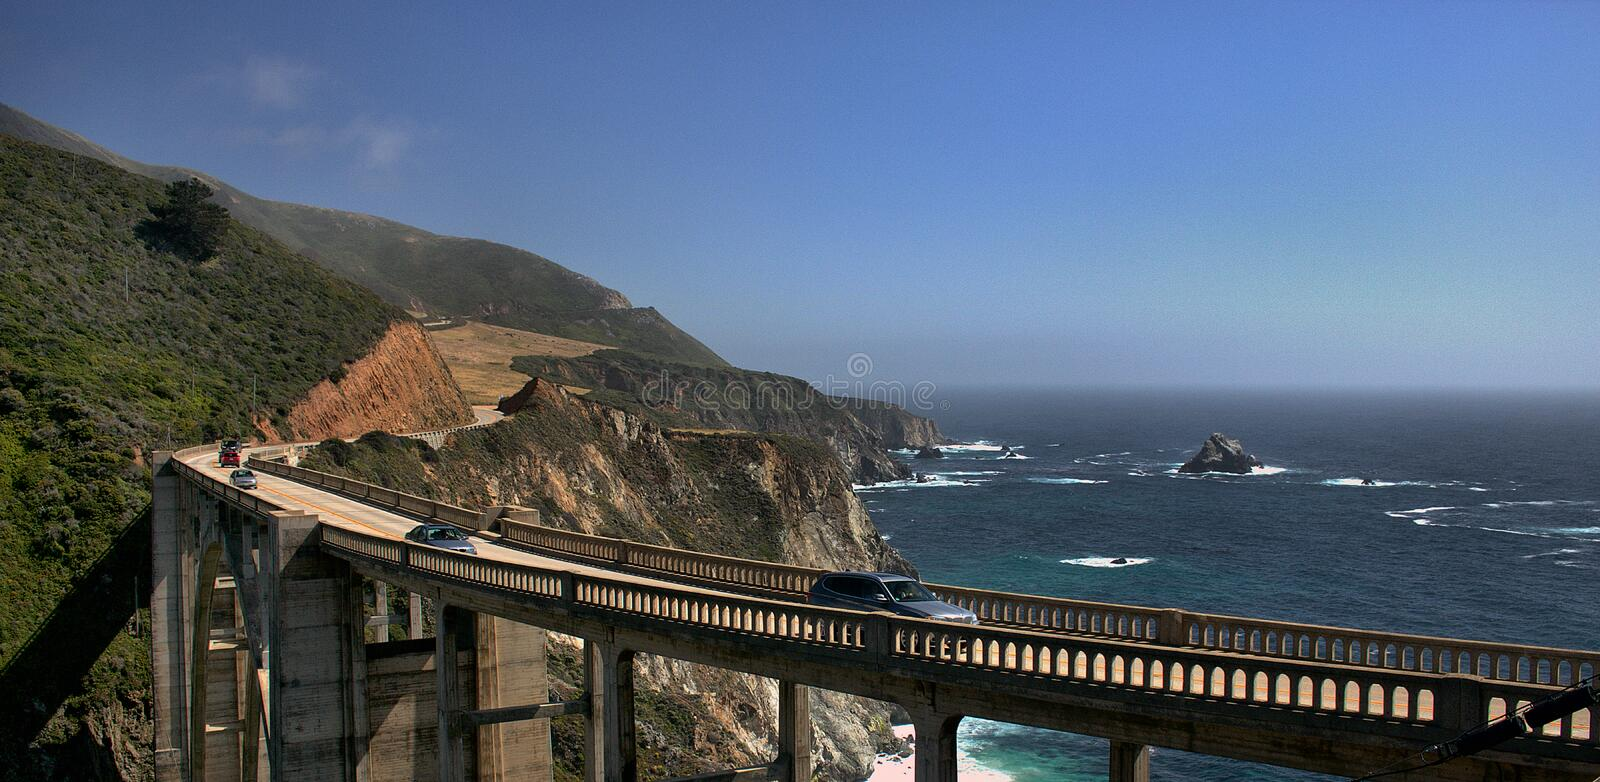 Bixby Creek Bridge. Spans the Bixby Creek for California Rout One (CA-1) a few miles North of Big Sur and South of Monterey. This si a double arch bridge and royalty free stock photos